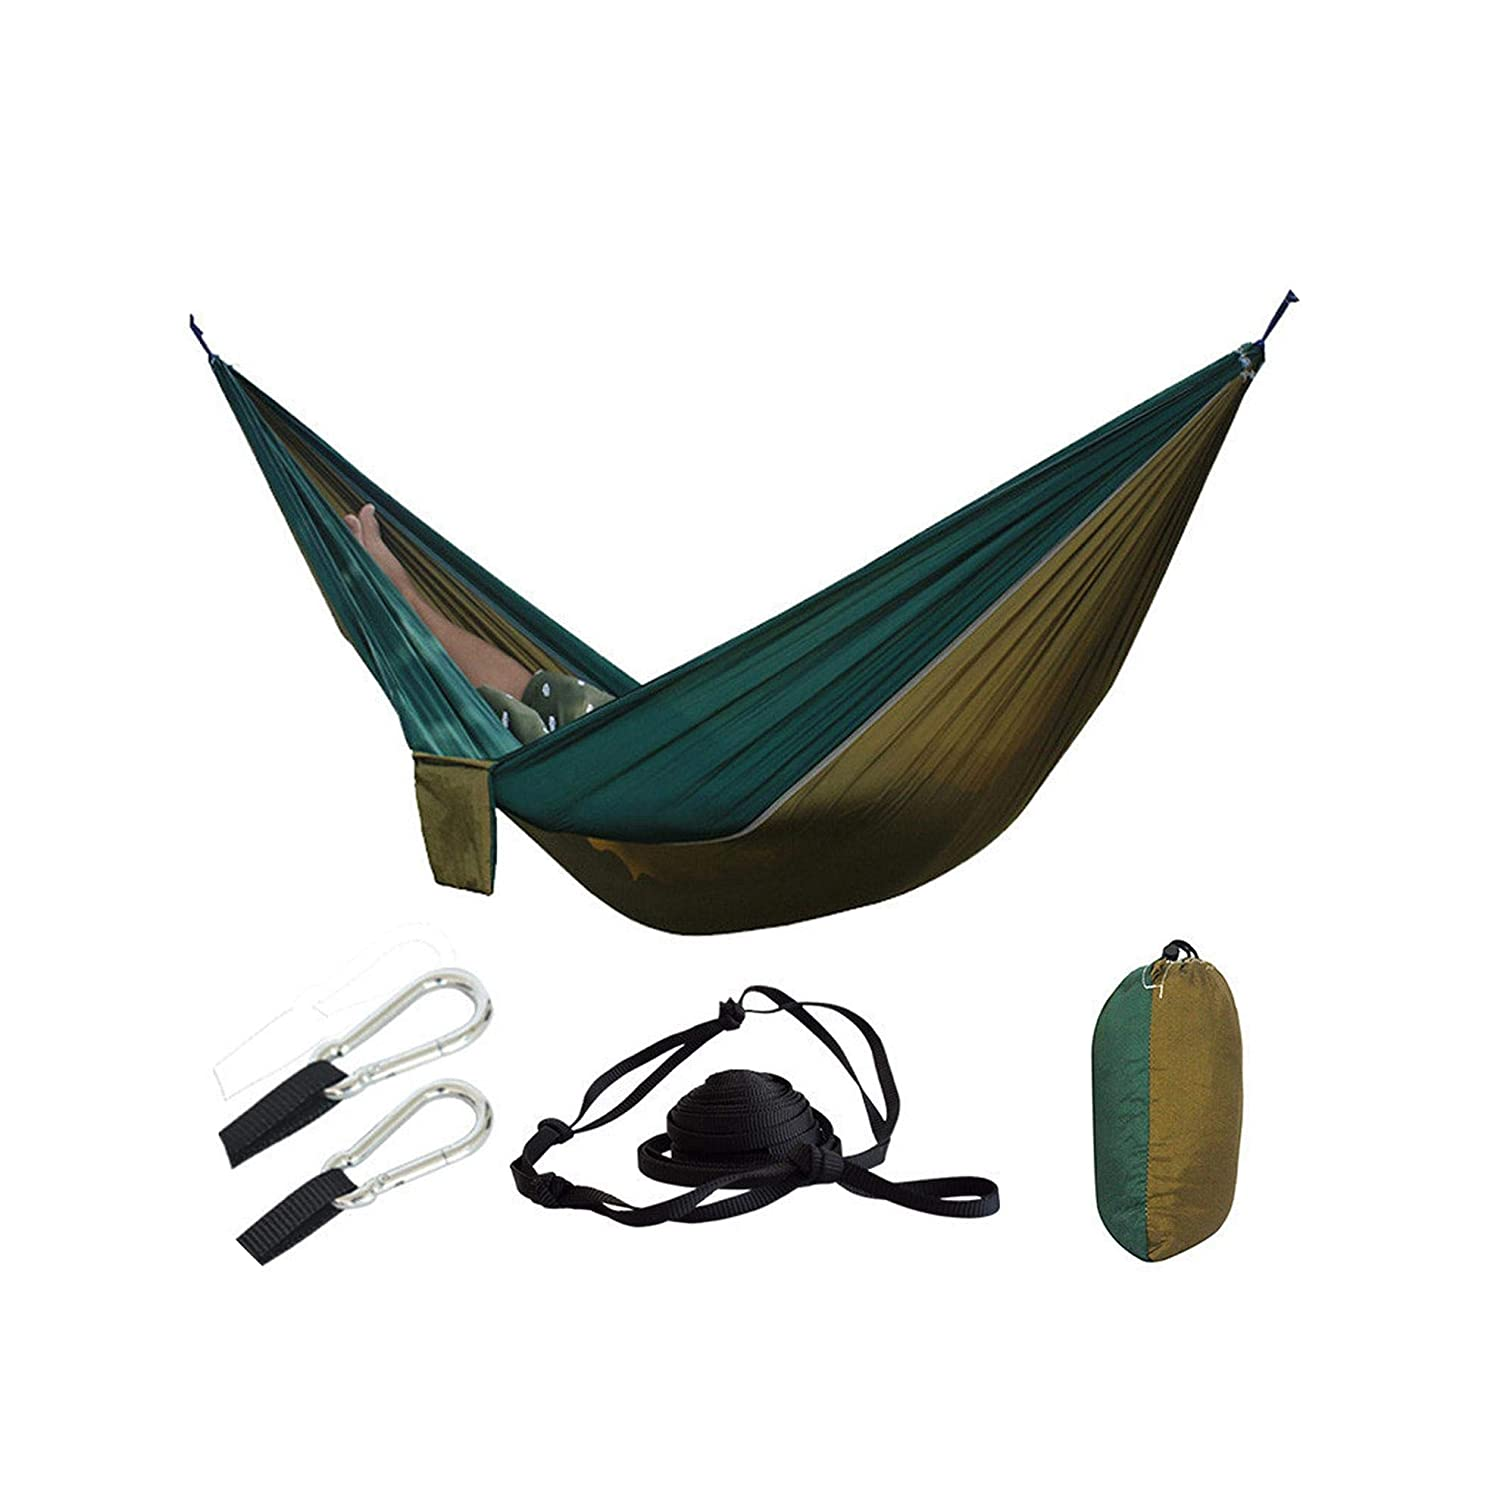 color as photo13 Hammock Outdoor Tent Garden Furniture A Camping Hammocks